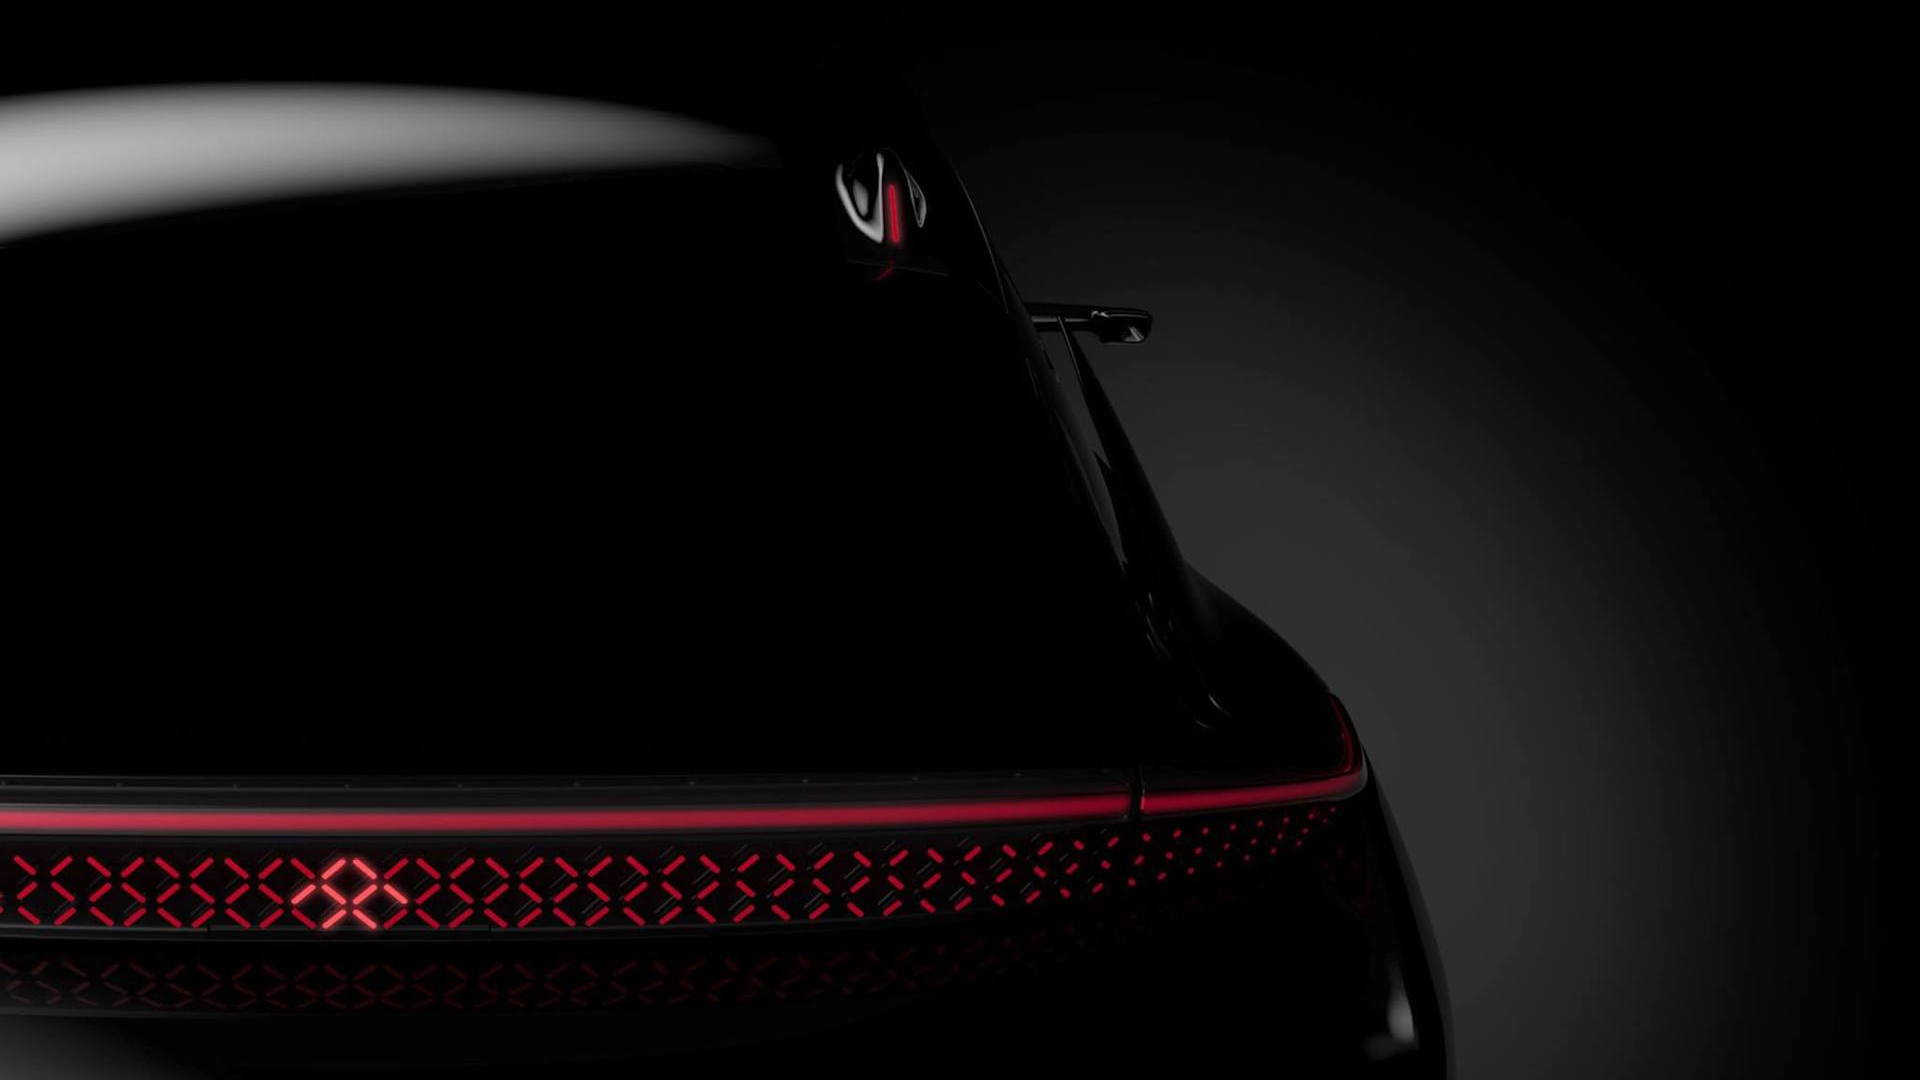 Teaser for Faraday Future elecric car debuting at 2017 Consumer Electronics show